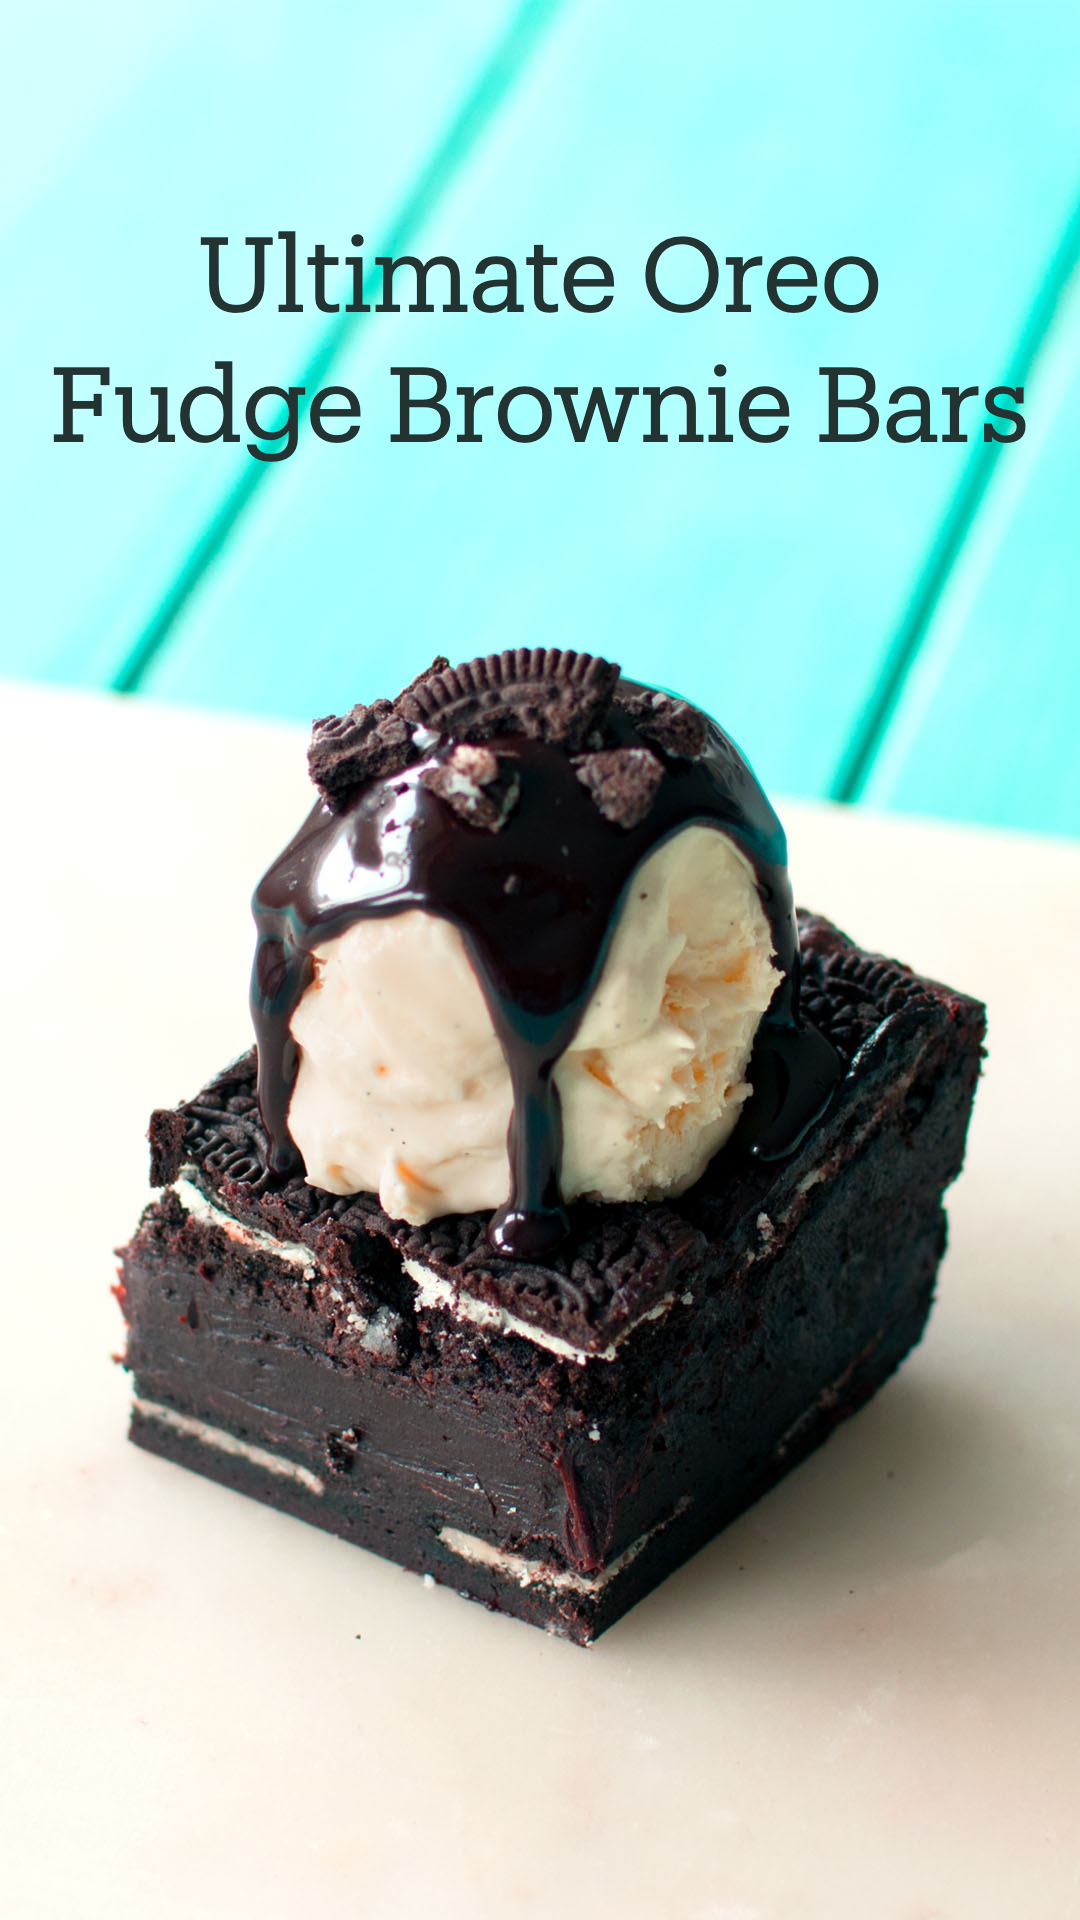 Photo of Ultimate Oreo Fudge Brownie Bars